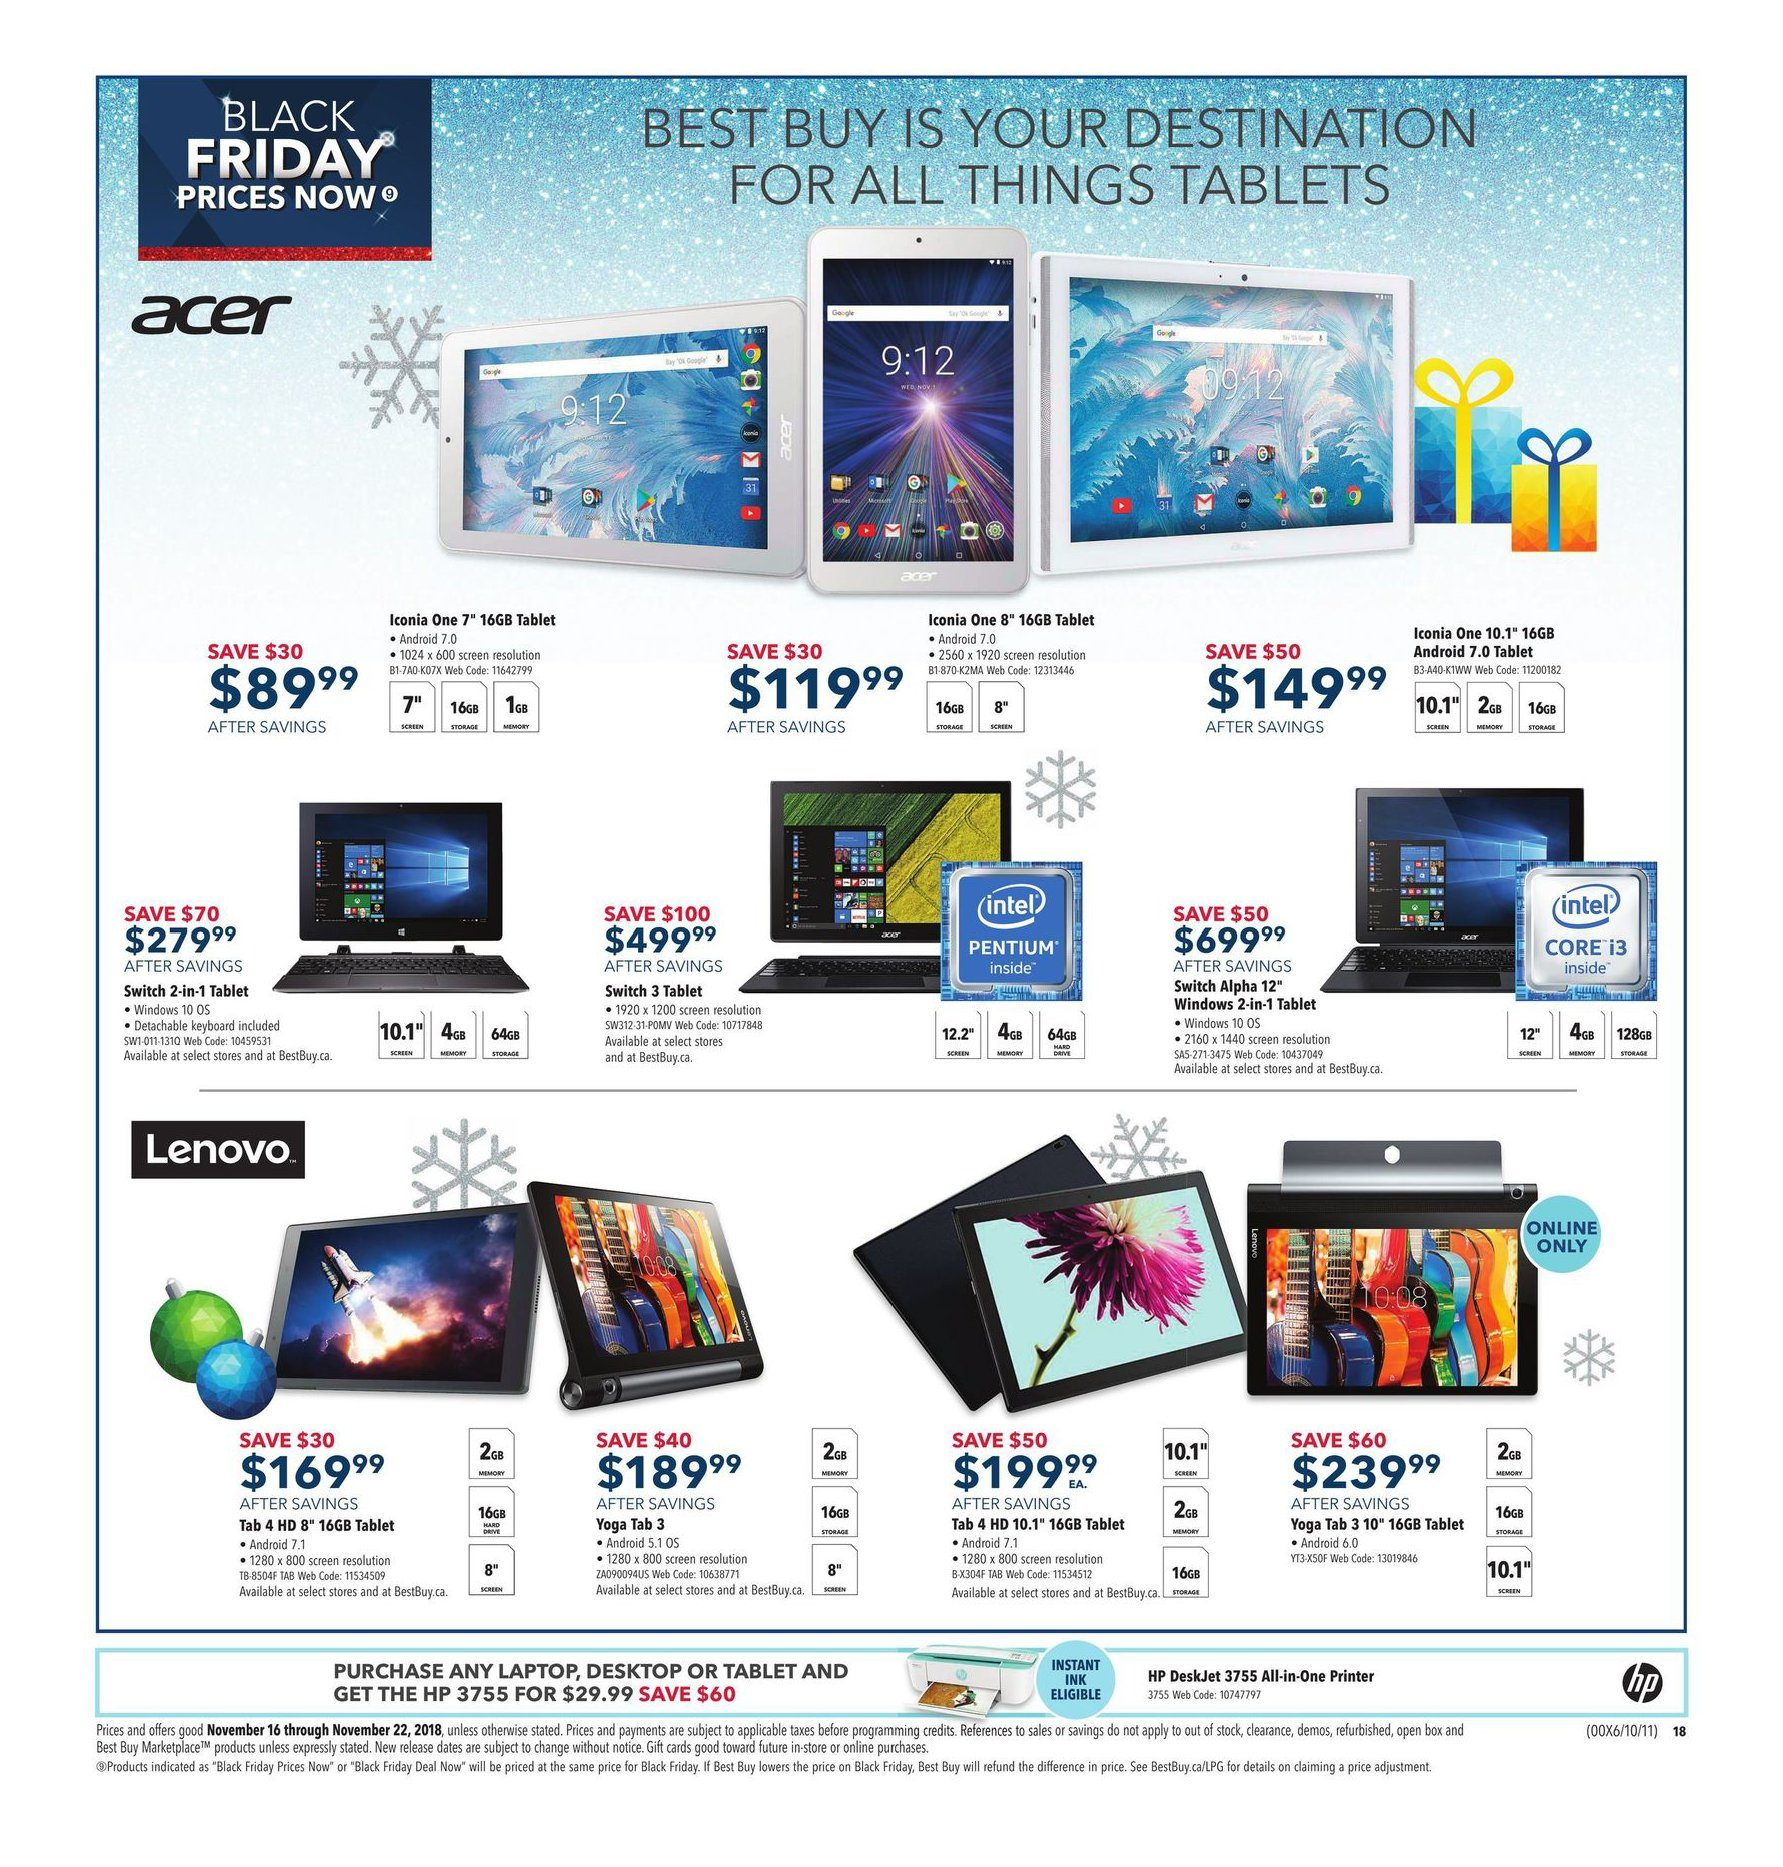 Best Buy Weekly Flyer Black Friday Prices Now Nov 16 My Dryer Maytaghas A Three Wire Electric Cord The Wires 22